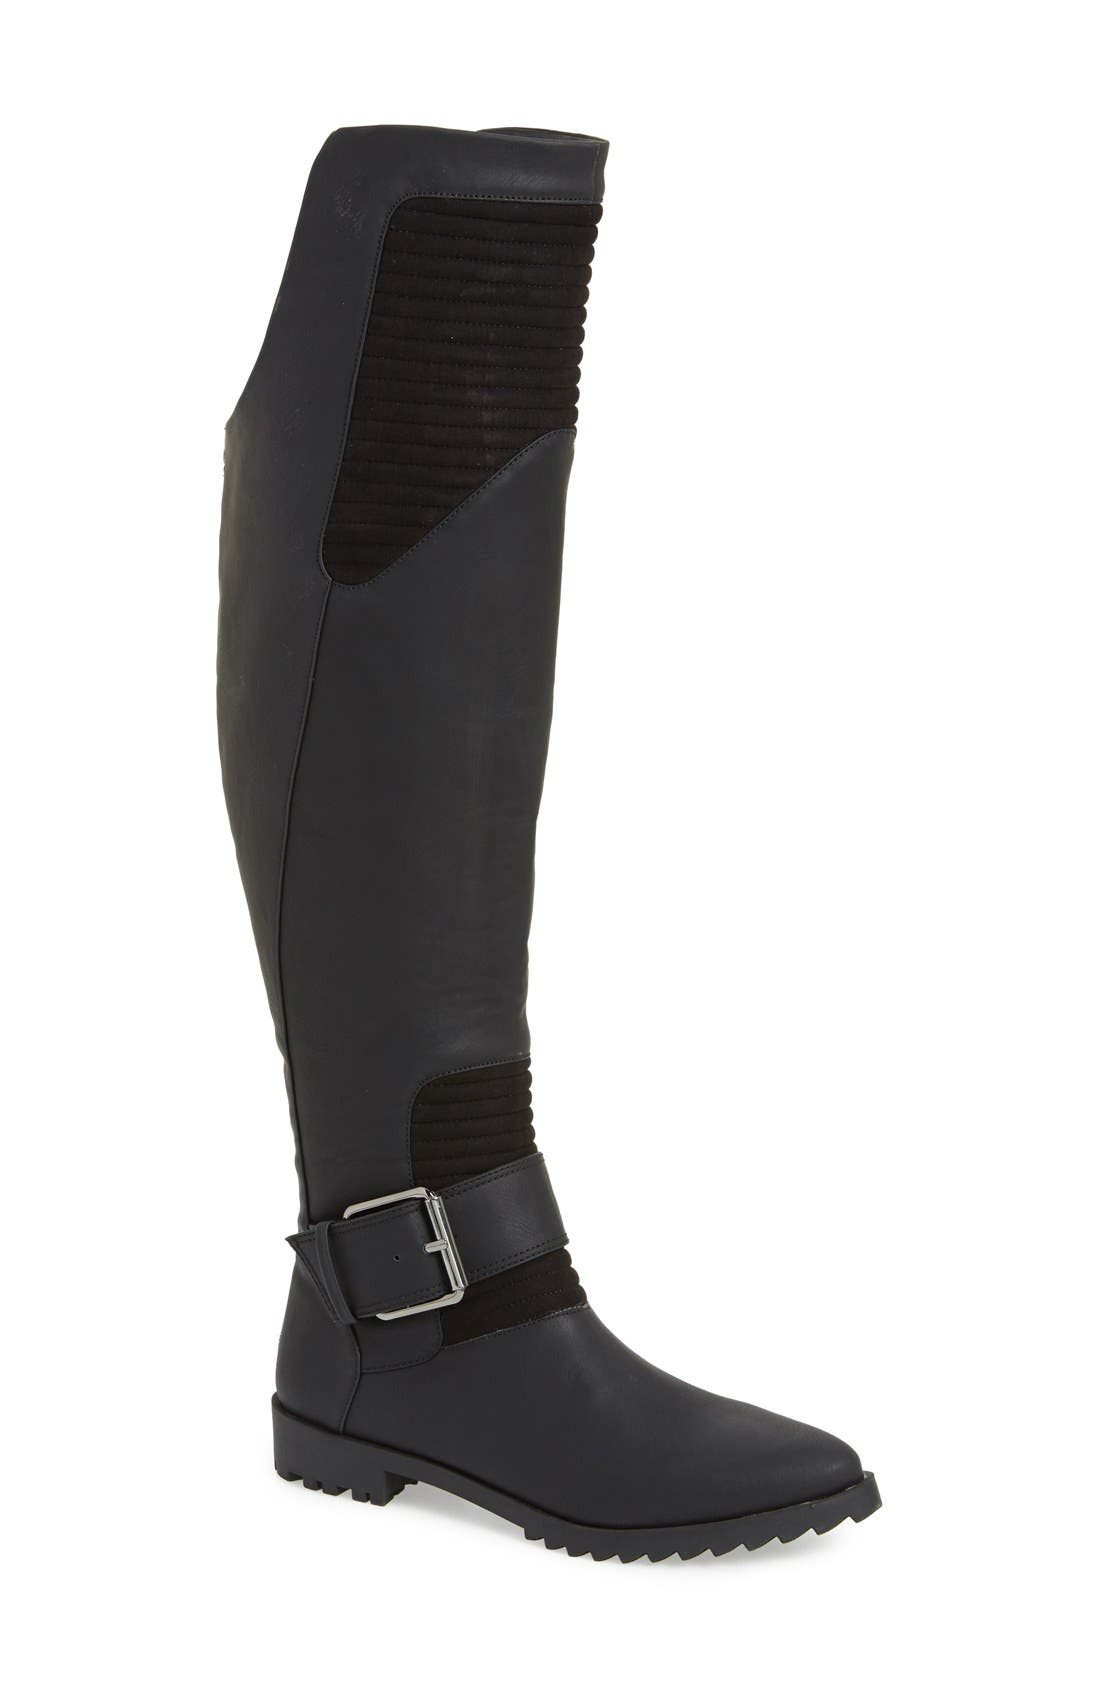 GX BY GWEN STEFANI, 'Toledo' Over the Knee Boot, Main thumbnail 1, color, 001